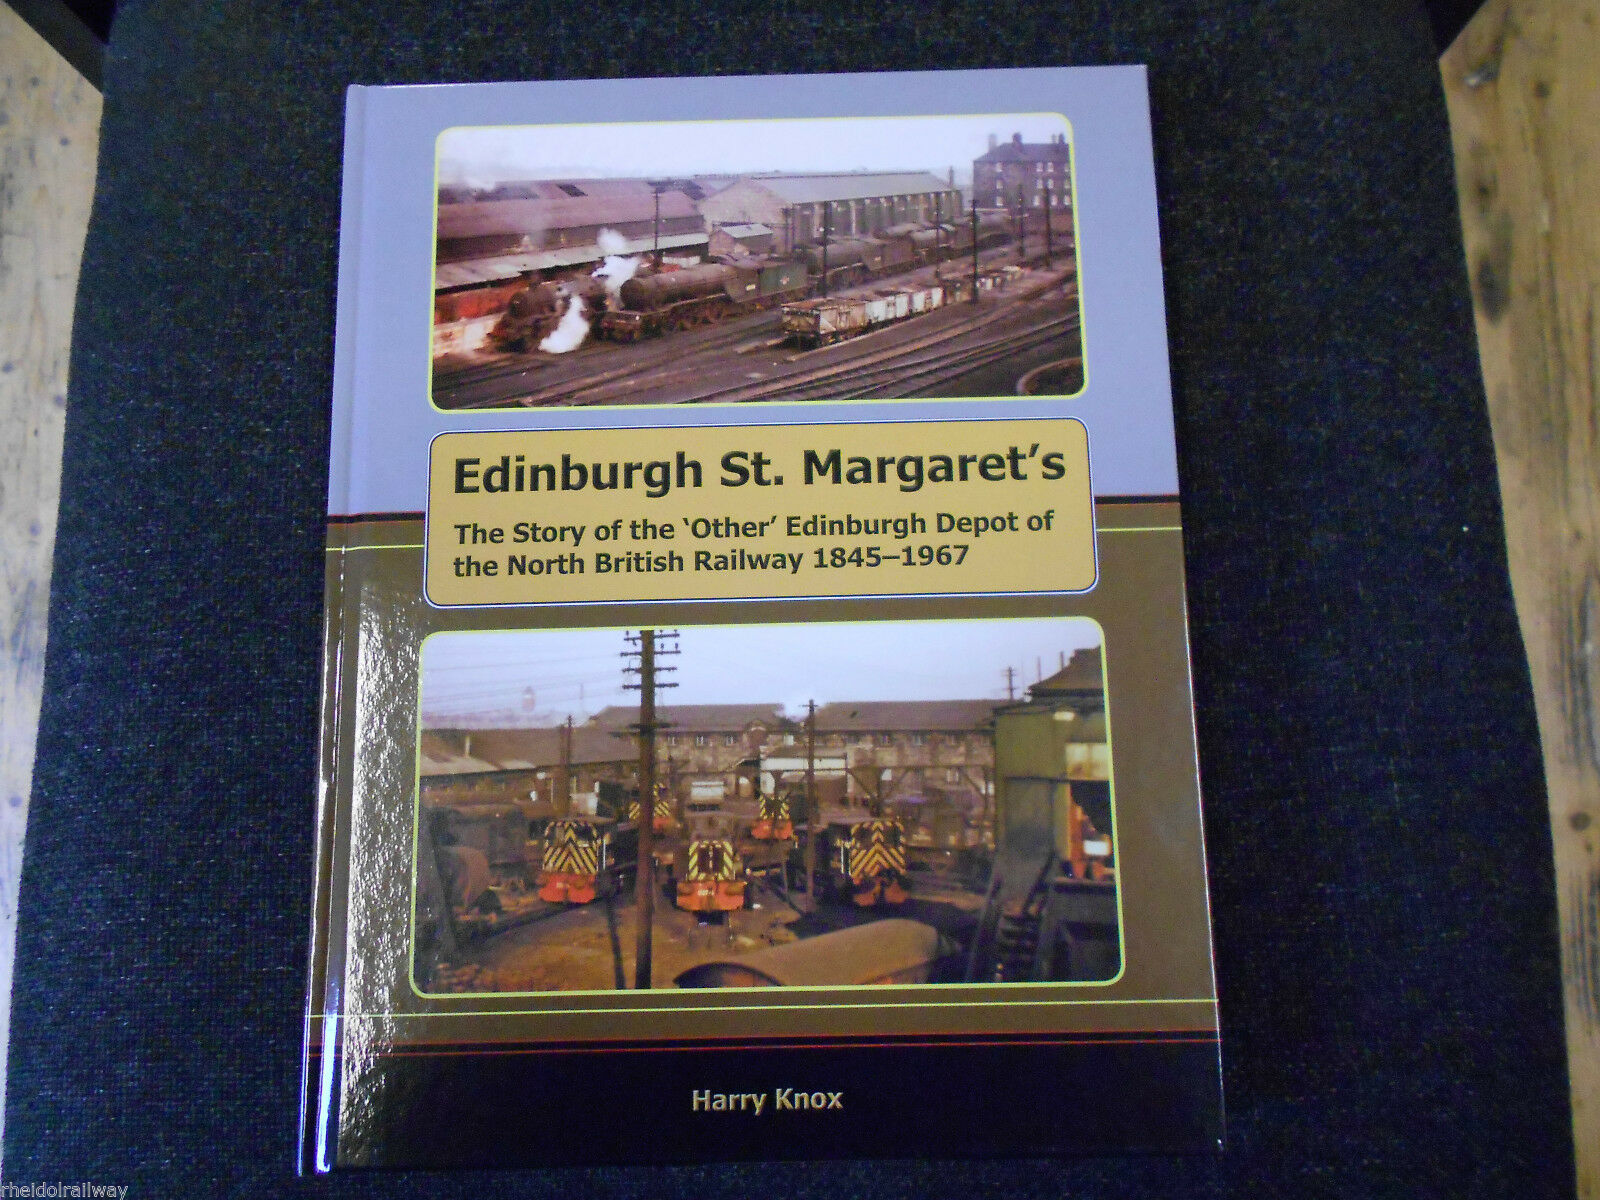 Edinburgh St. Margaret's North British Railway 1845-1967 by Harry Knox